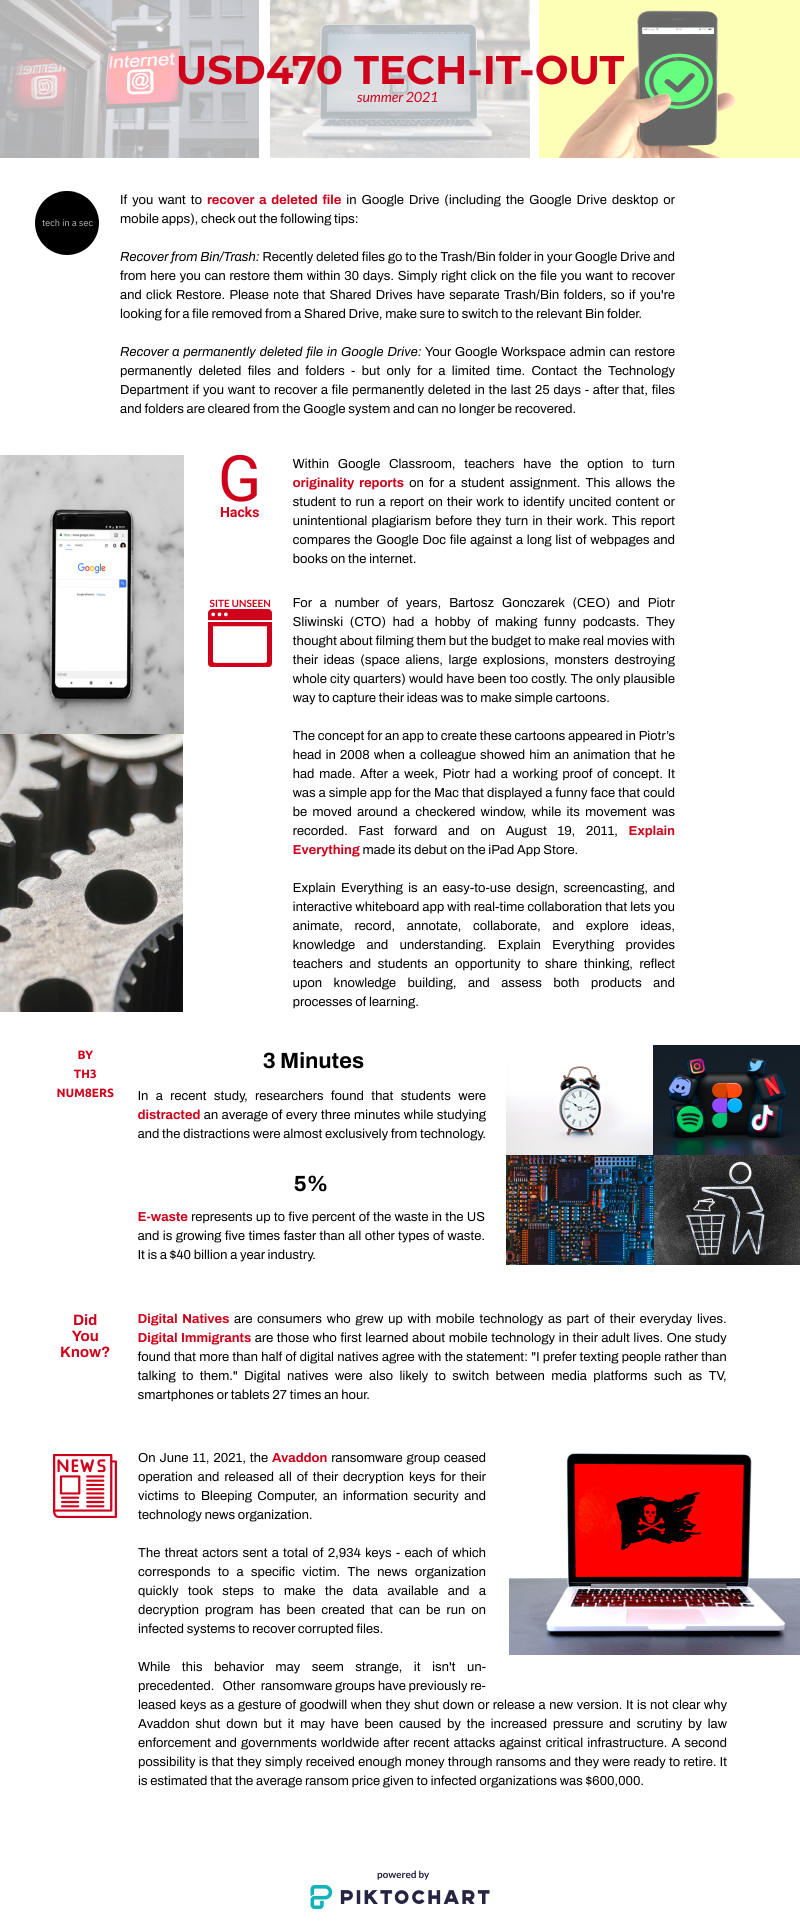 Tech It Out Infographic for June and July 2021